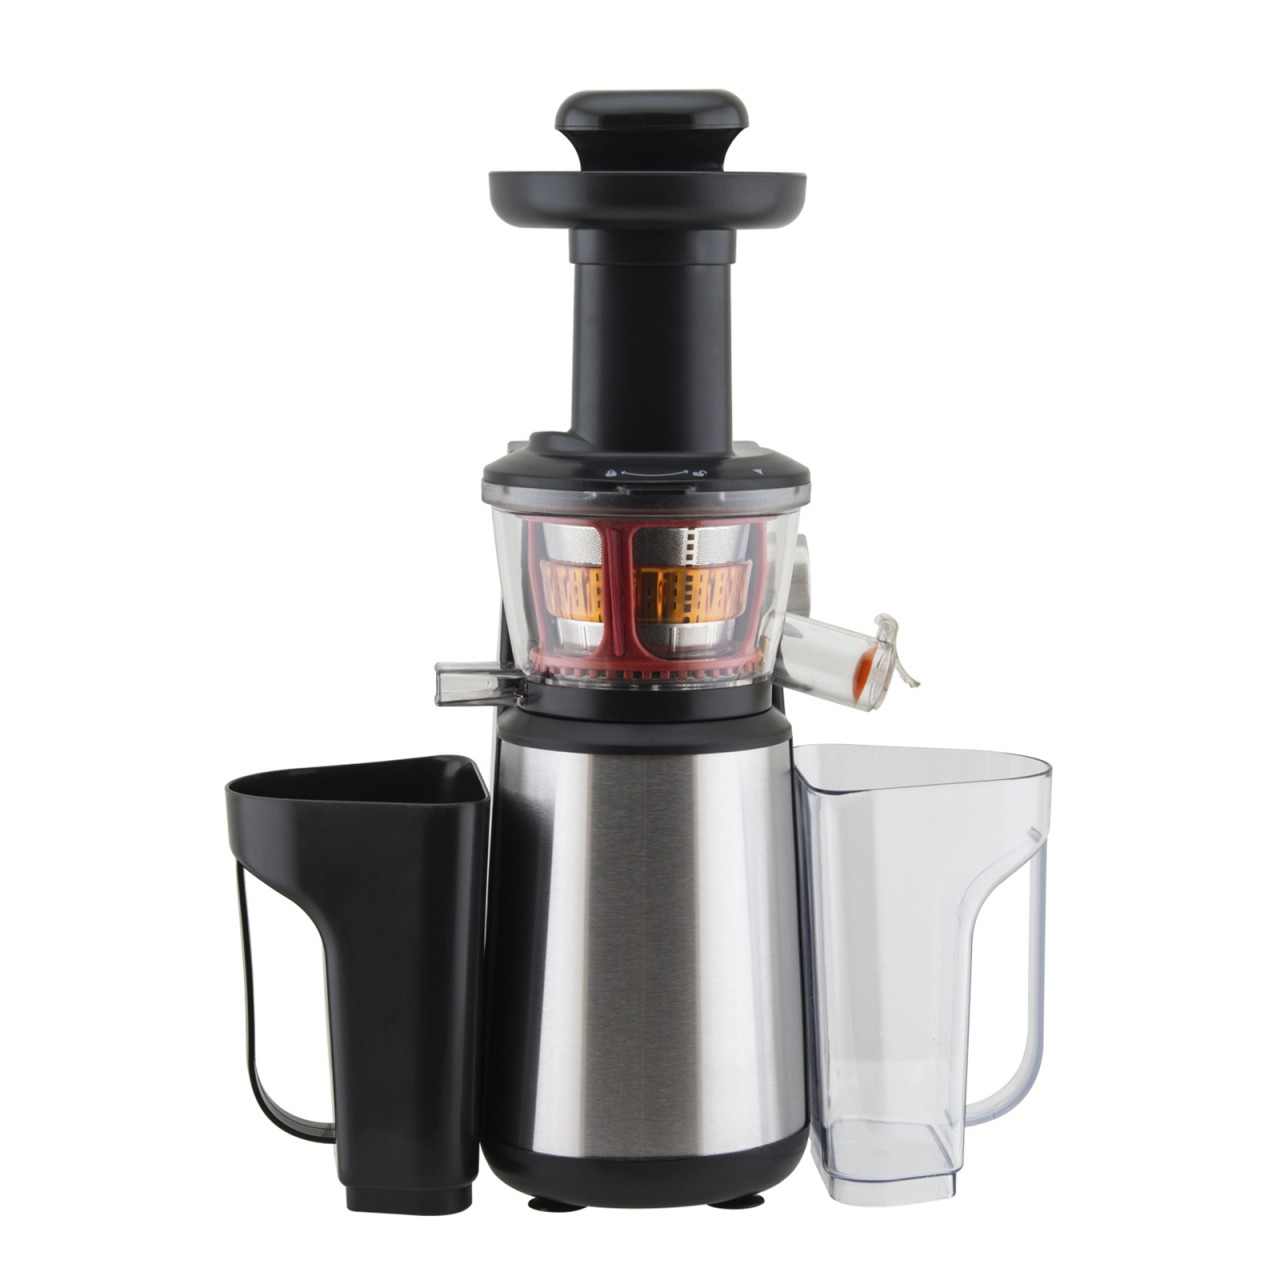 power entsafter slow juicer edelstahl 400watt. Black Bedroom Furniture Sets. Home Design Ideas